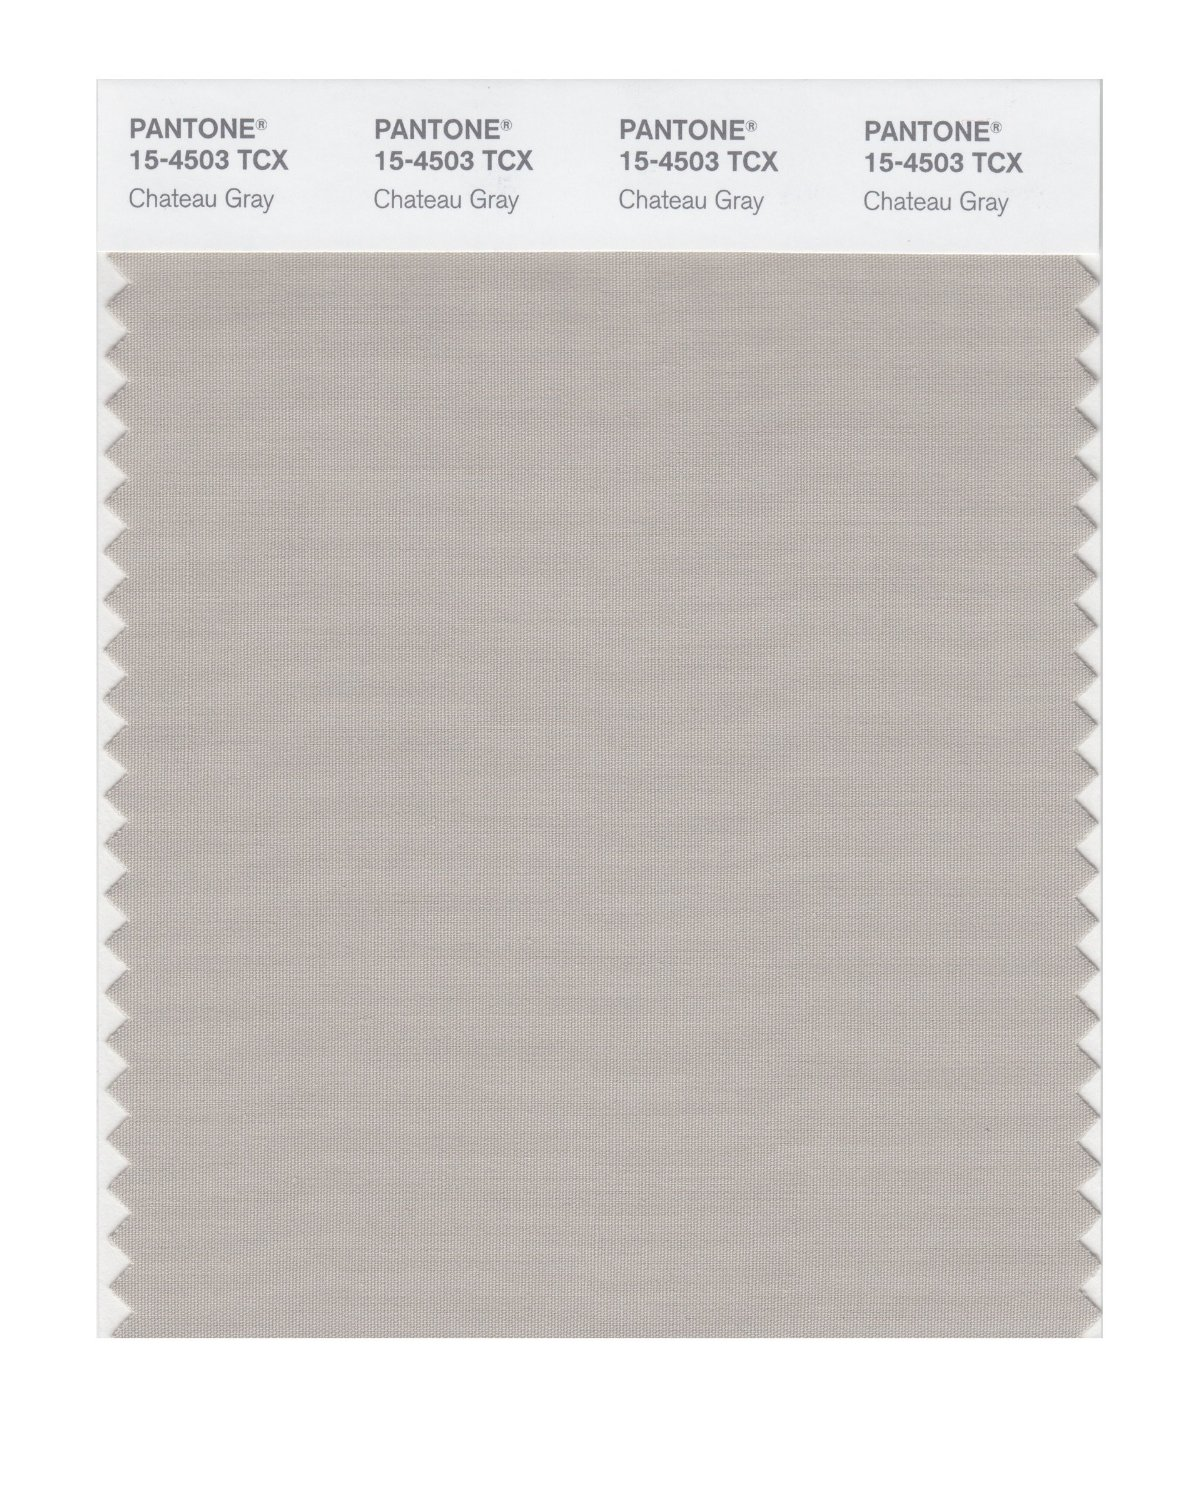 Pantone Smart Swatch 15-4503 Chateau Gray